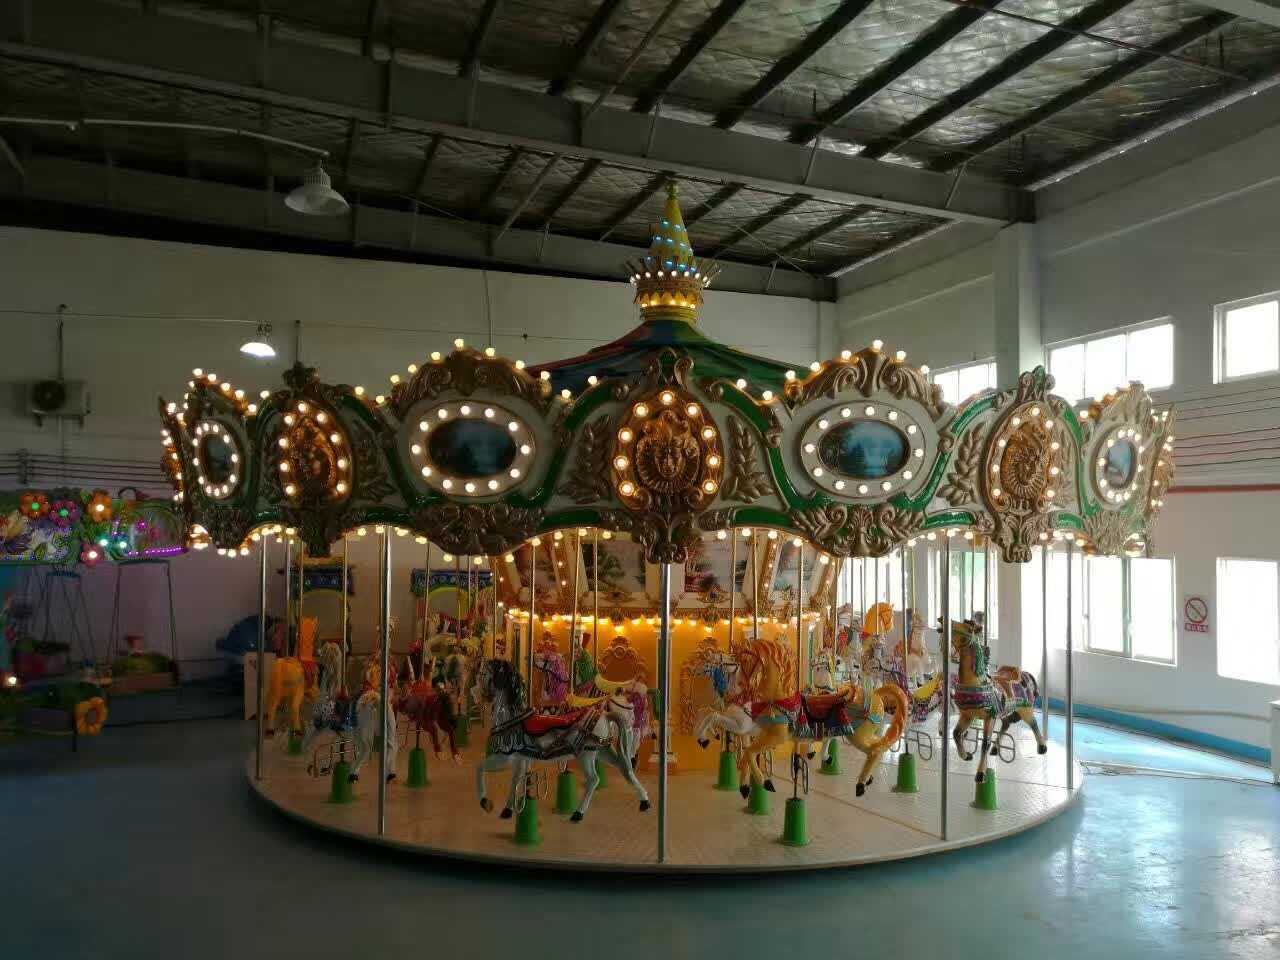 LETIAN 24 seats childrens carousel design shopping centers-4